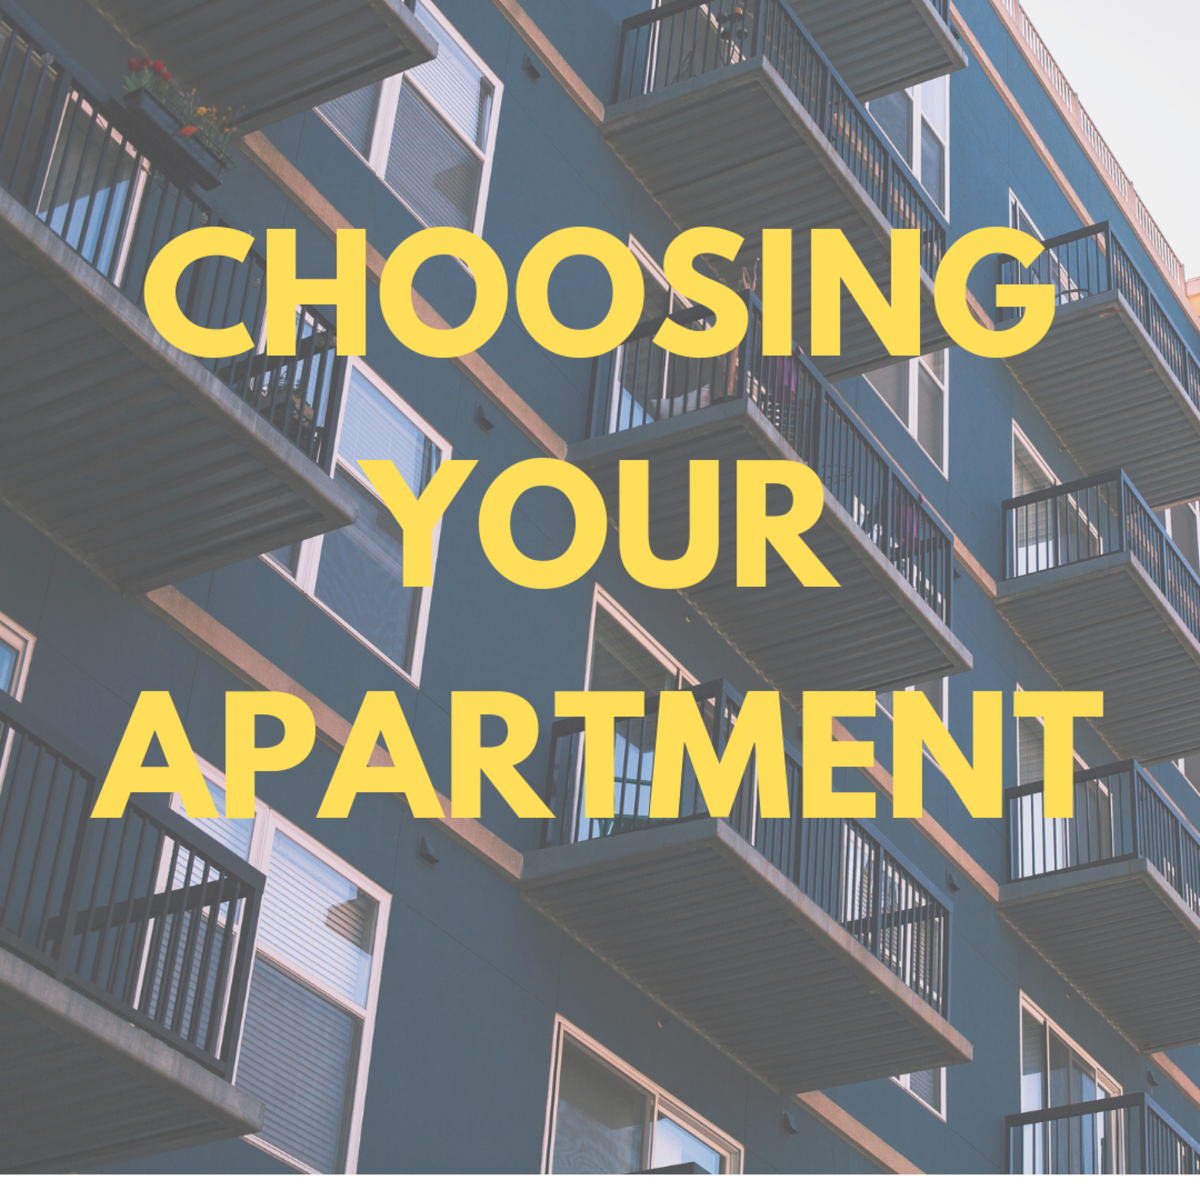 Choosing your apartment.